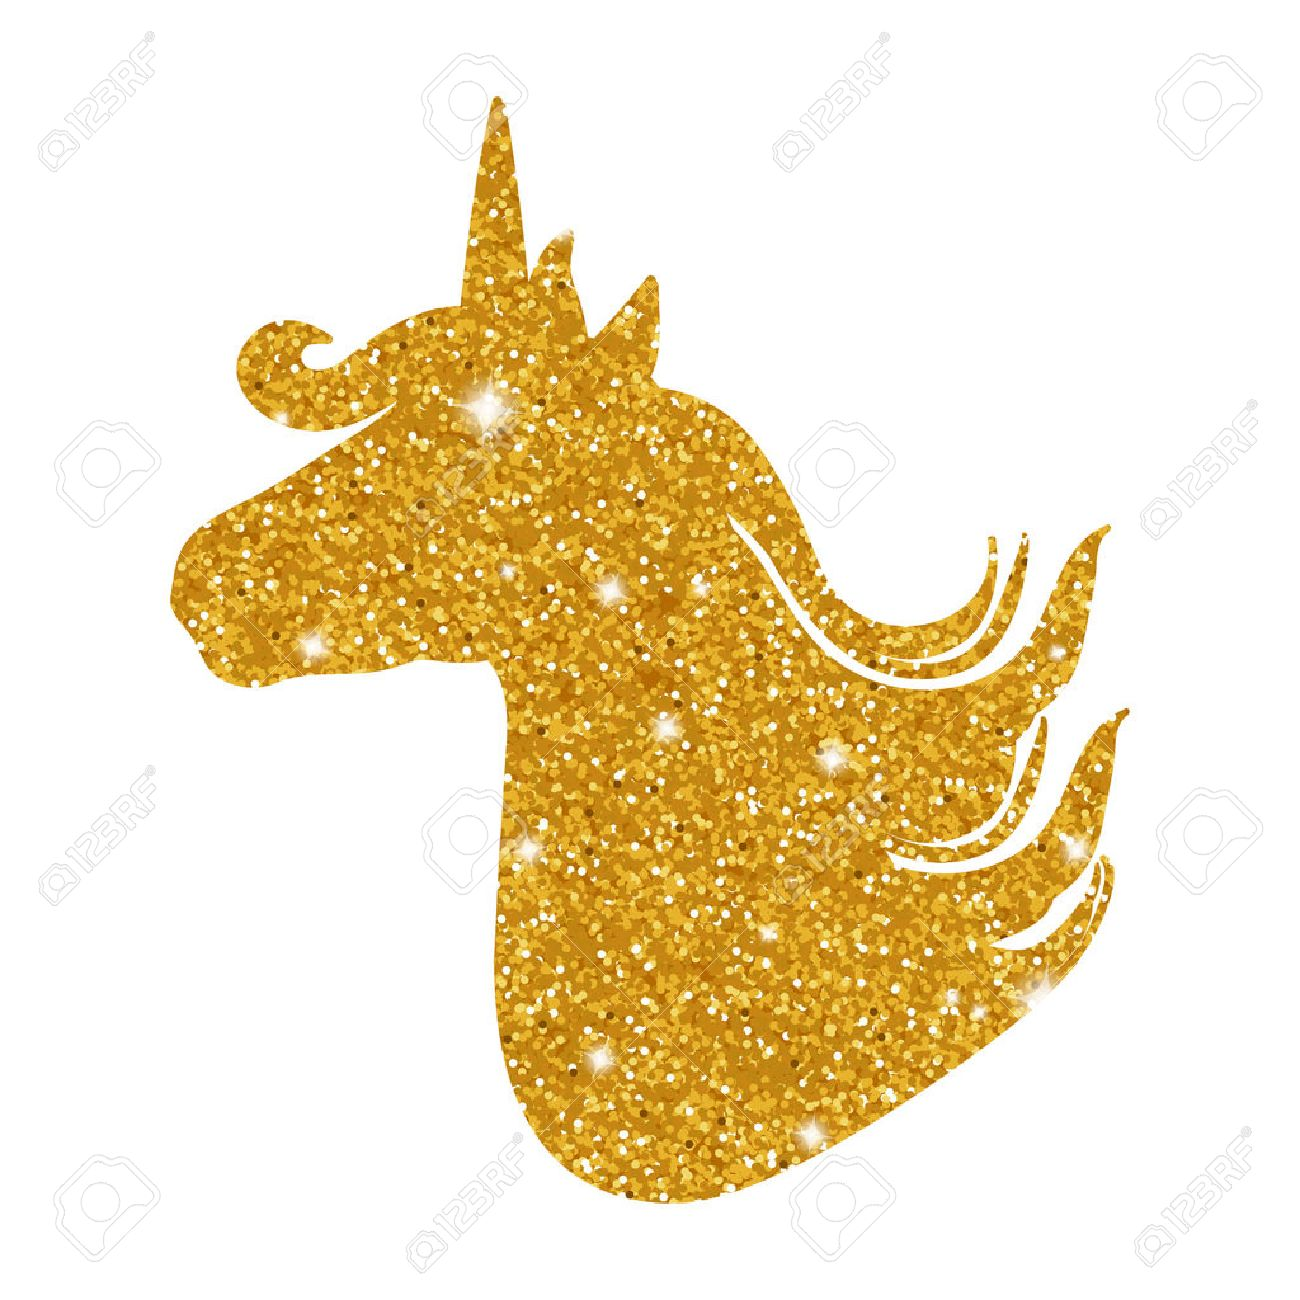 Colorful patch with unicorn gold glitter silhouette, bright colors.